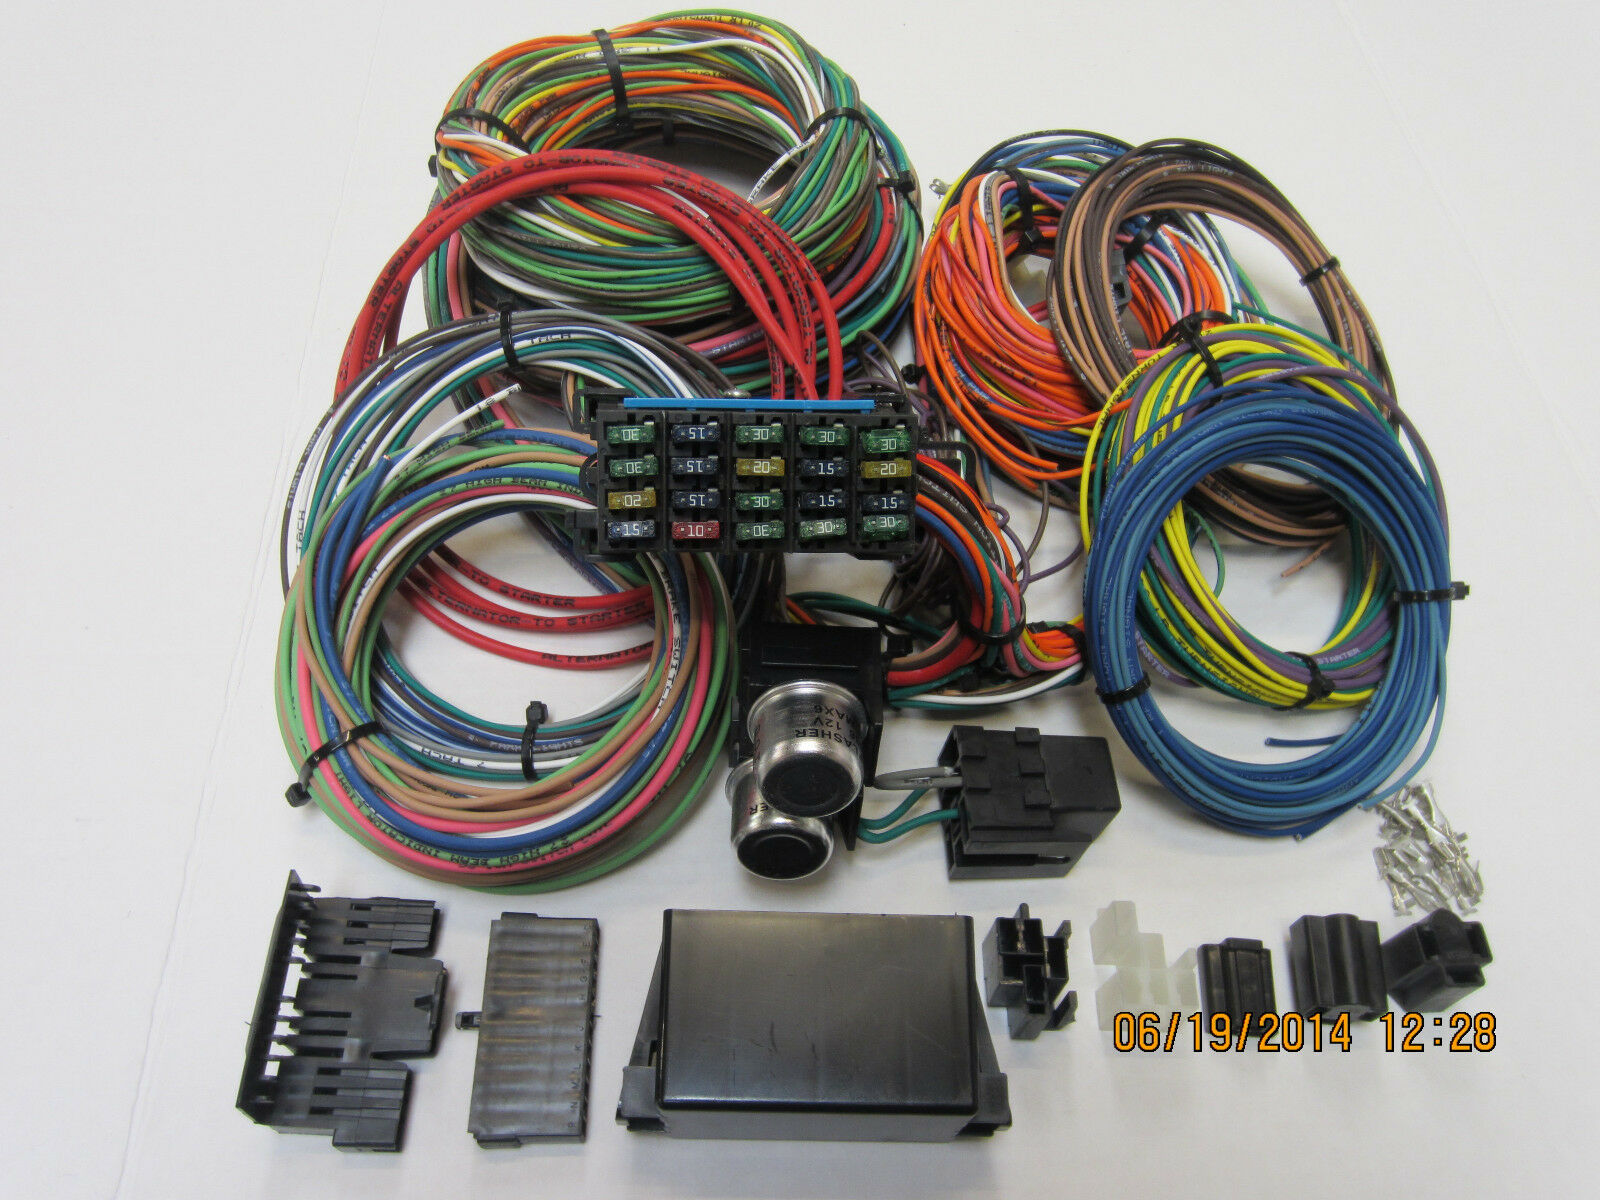 ez wiring 21 circuit harness manual ez wiring for street rat rod wiring diagram rat rod wiring harness diagram